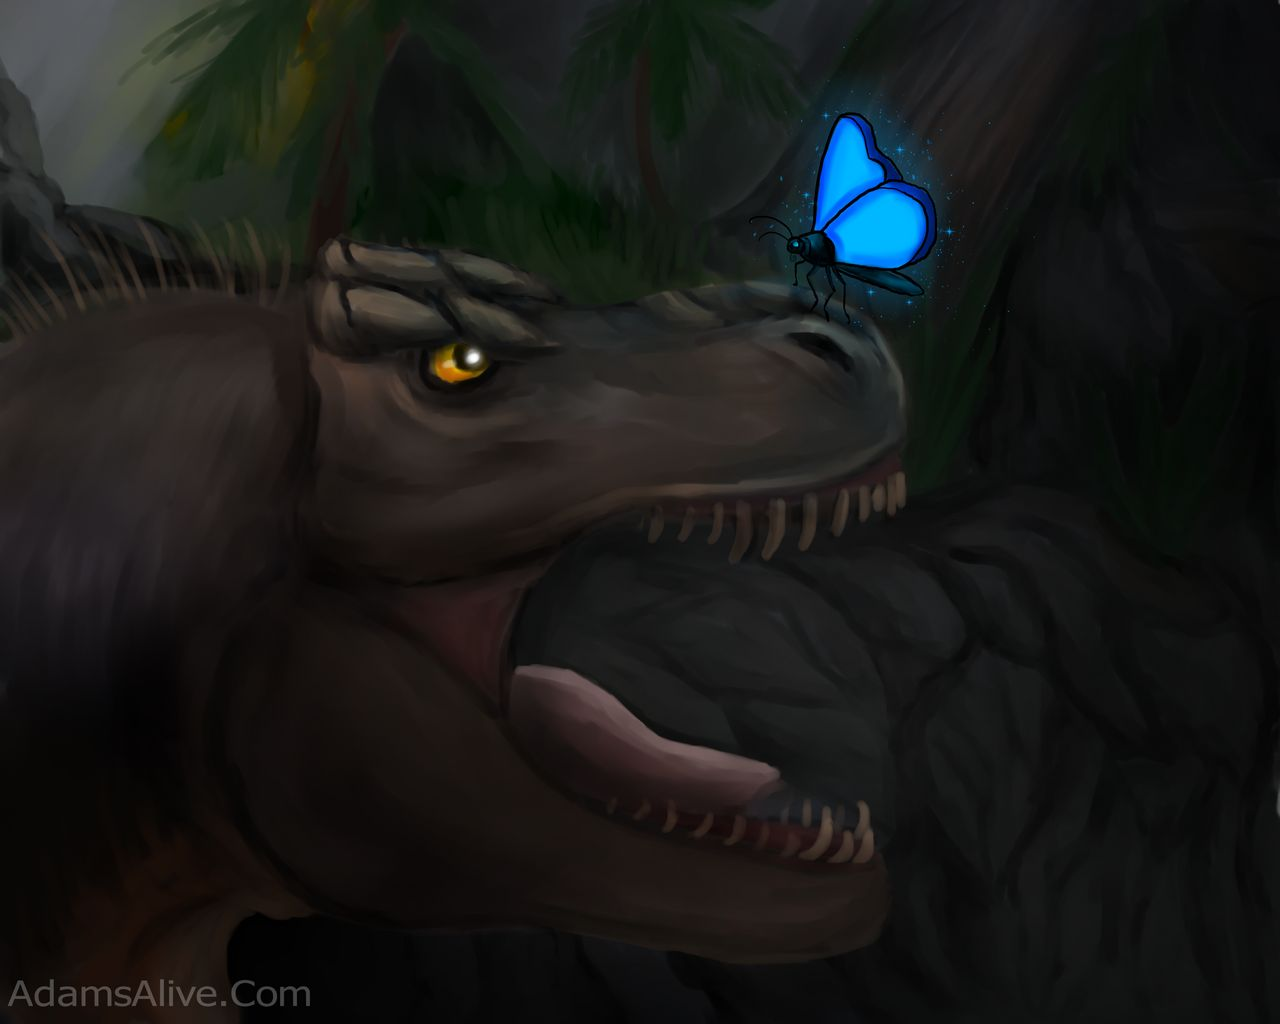 the_t_rex_and_the_butterfly_based_on_ark_2_by_adamsalive4kids_deadsc9-fullview.jpg.b7f1ffdff8043ac7d22757666c4c6518.jpg